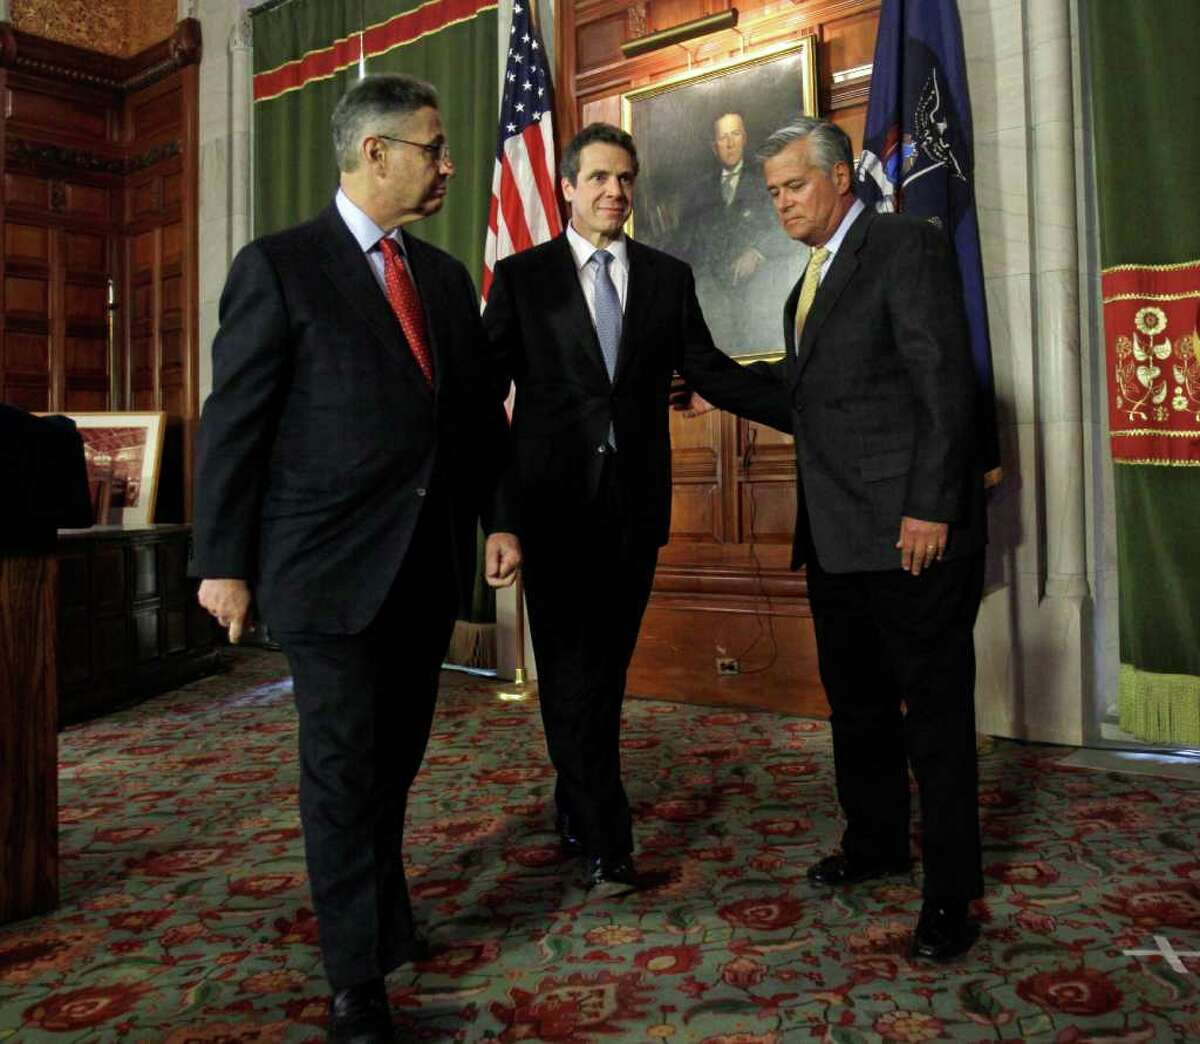 New York Gov. Andrew Cuomo, center, Assembly Speaker Sheldon Silver, D-Manhattan, left, and Senate Majority Leader Dean Skelos, R-Rockville Centre, leave a news conference in the Red Room at the Capitol in Albany, N.Y., Wednesday, March 16, 2011. (AP Photo)